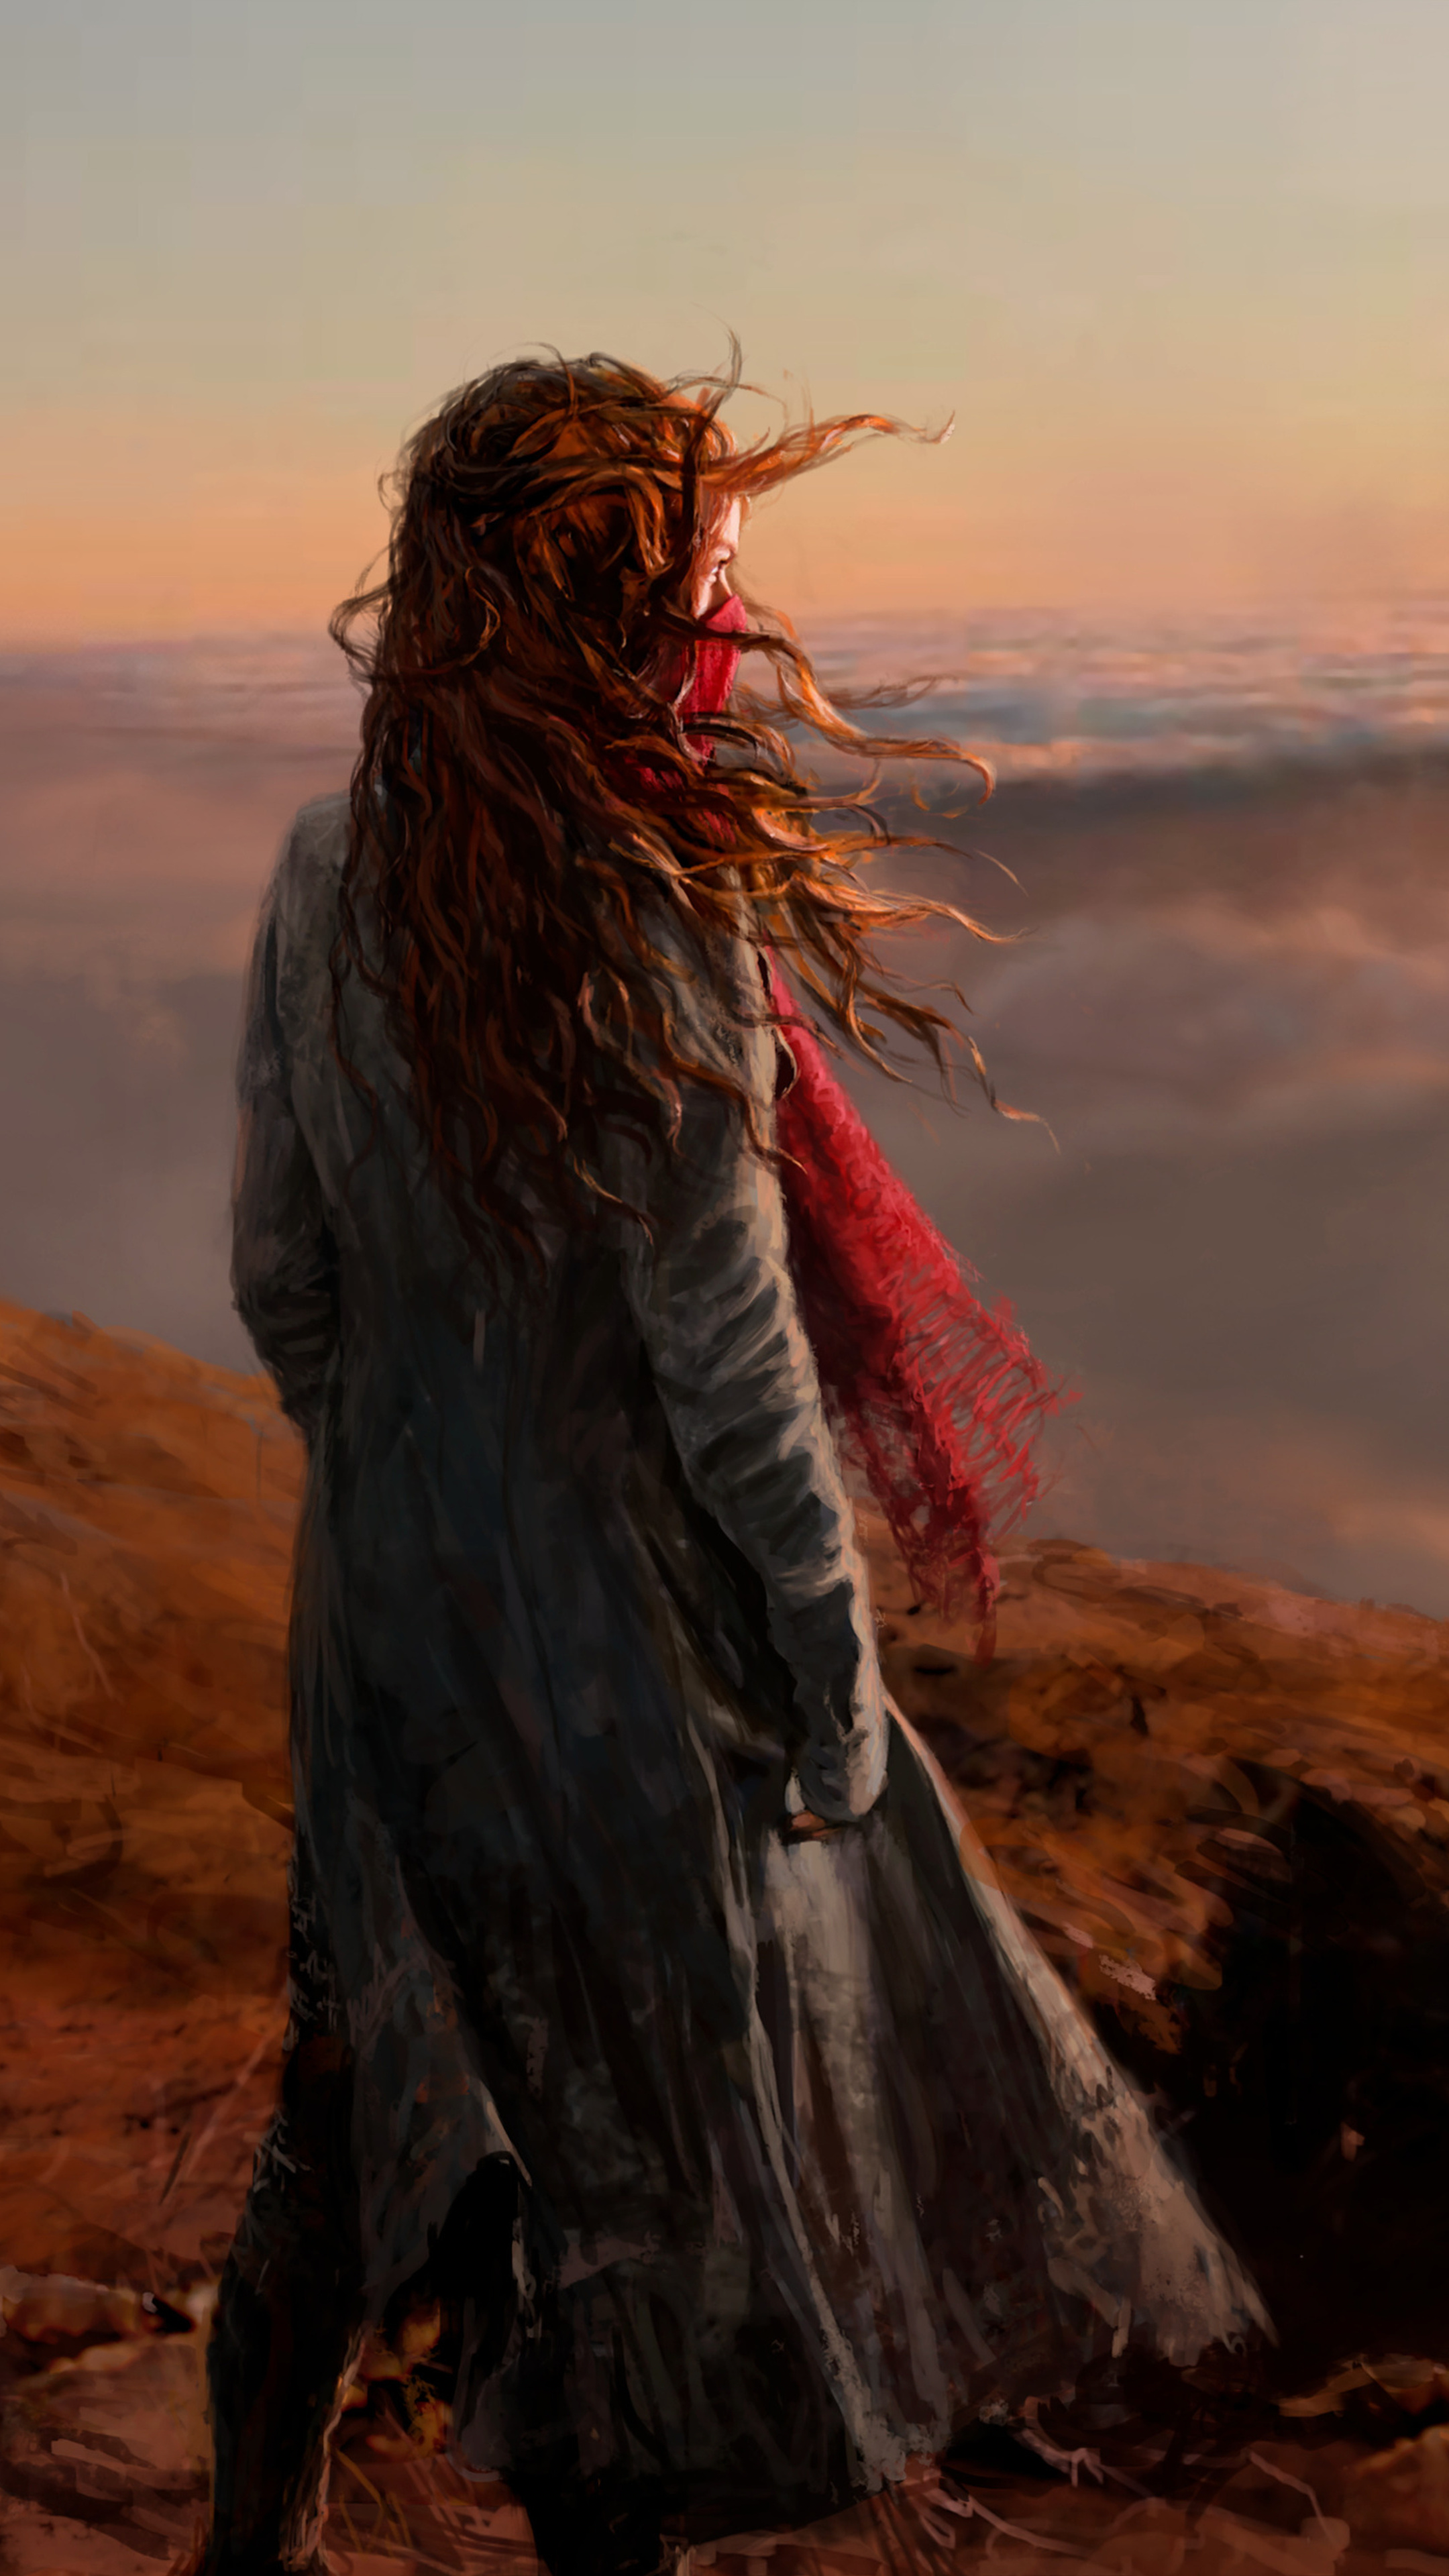 summary of mortal engines Mortal engines (december 14) plot summary : thousands of years after civilization was destroyed by a cataclysmic event, humankind has adapted and a new way of living has evolved gigantic moving cities now roam the earth, ruthlessly preying upon smaller traction towns.